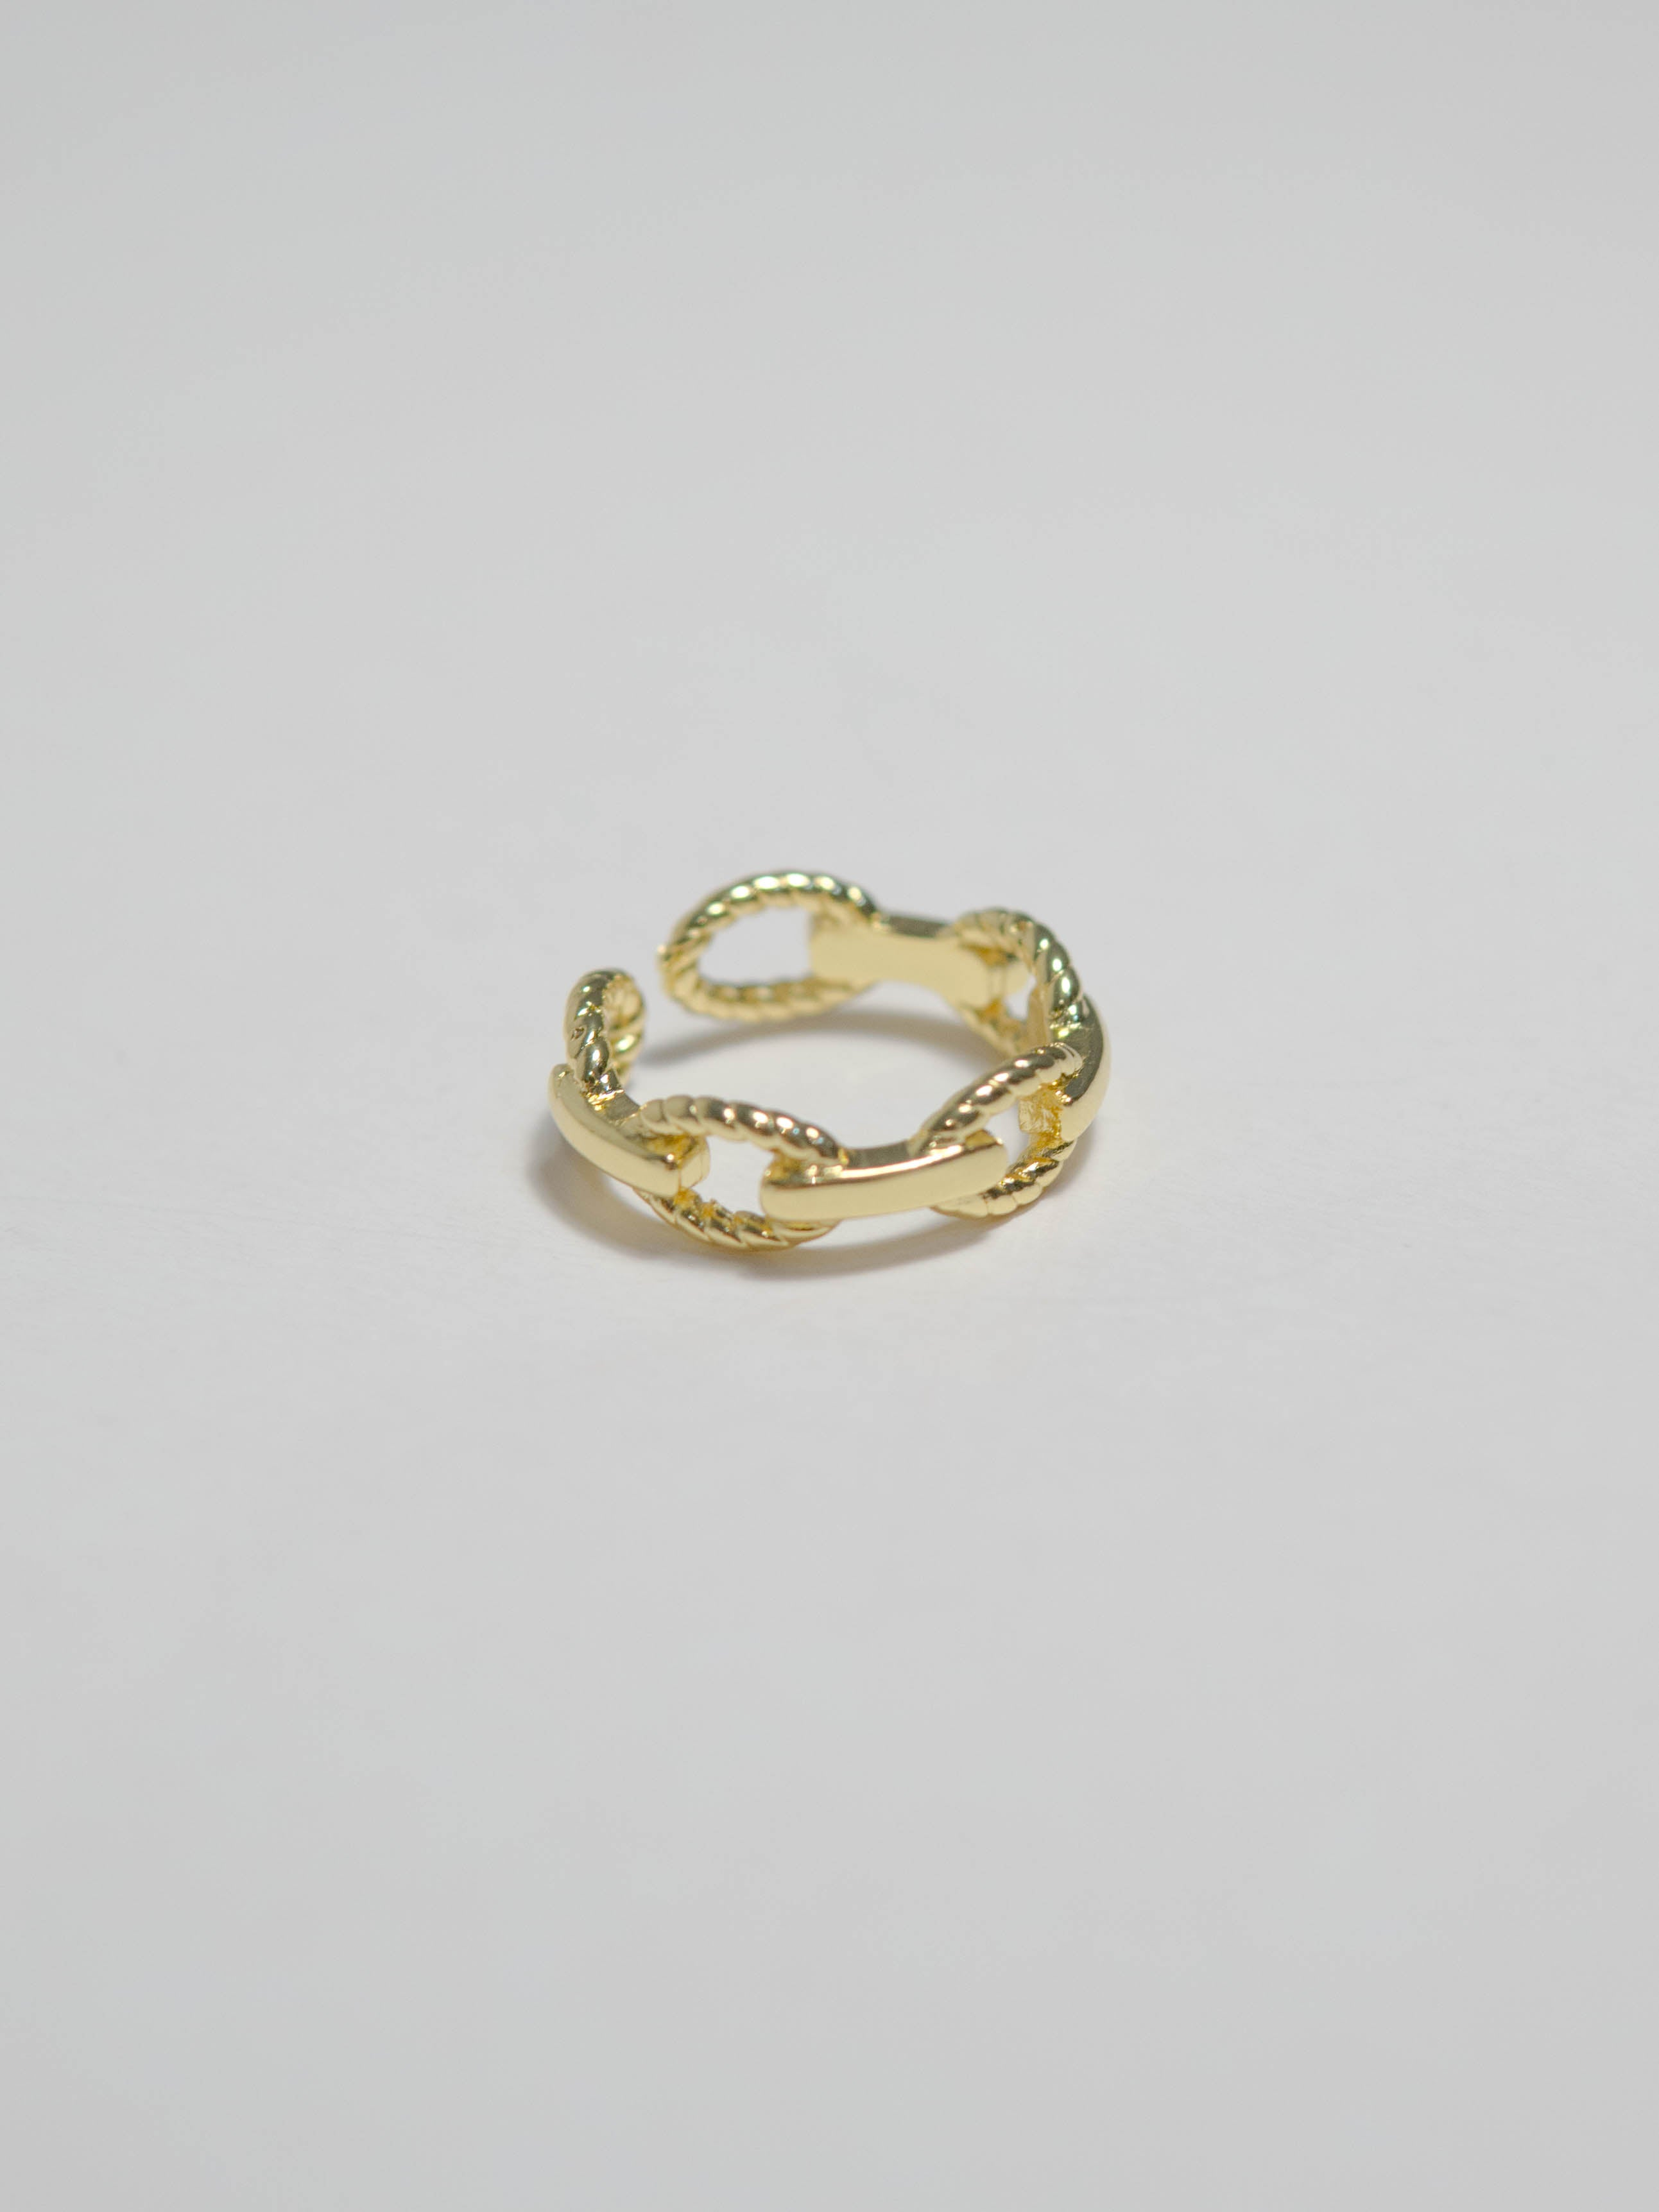 French style chain ring